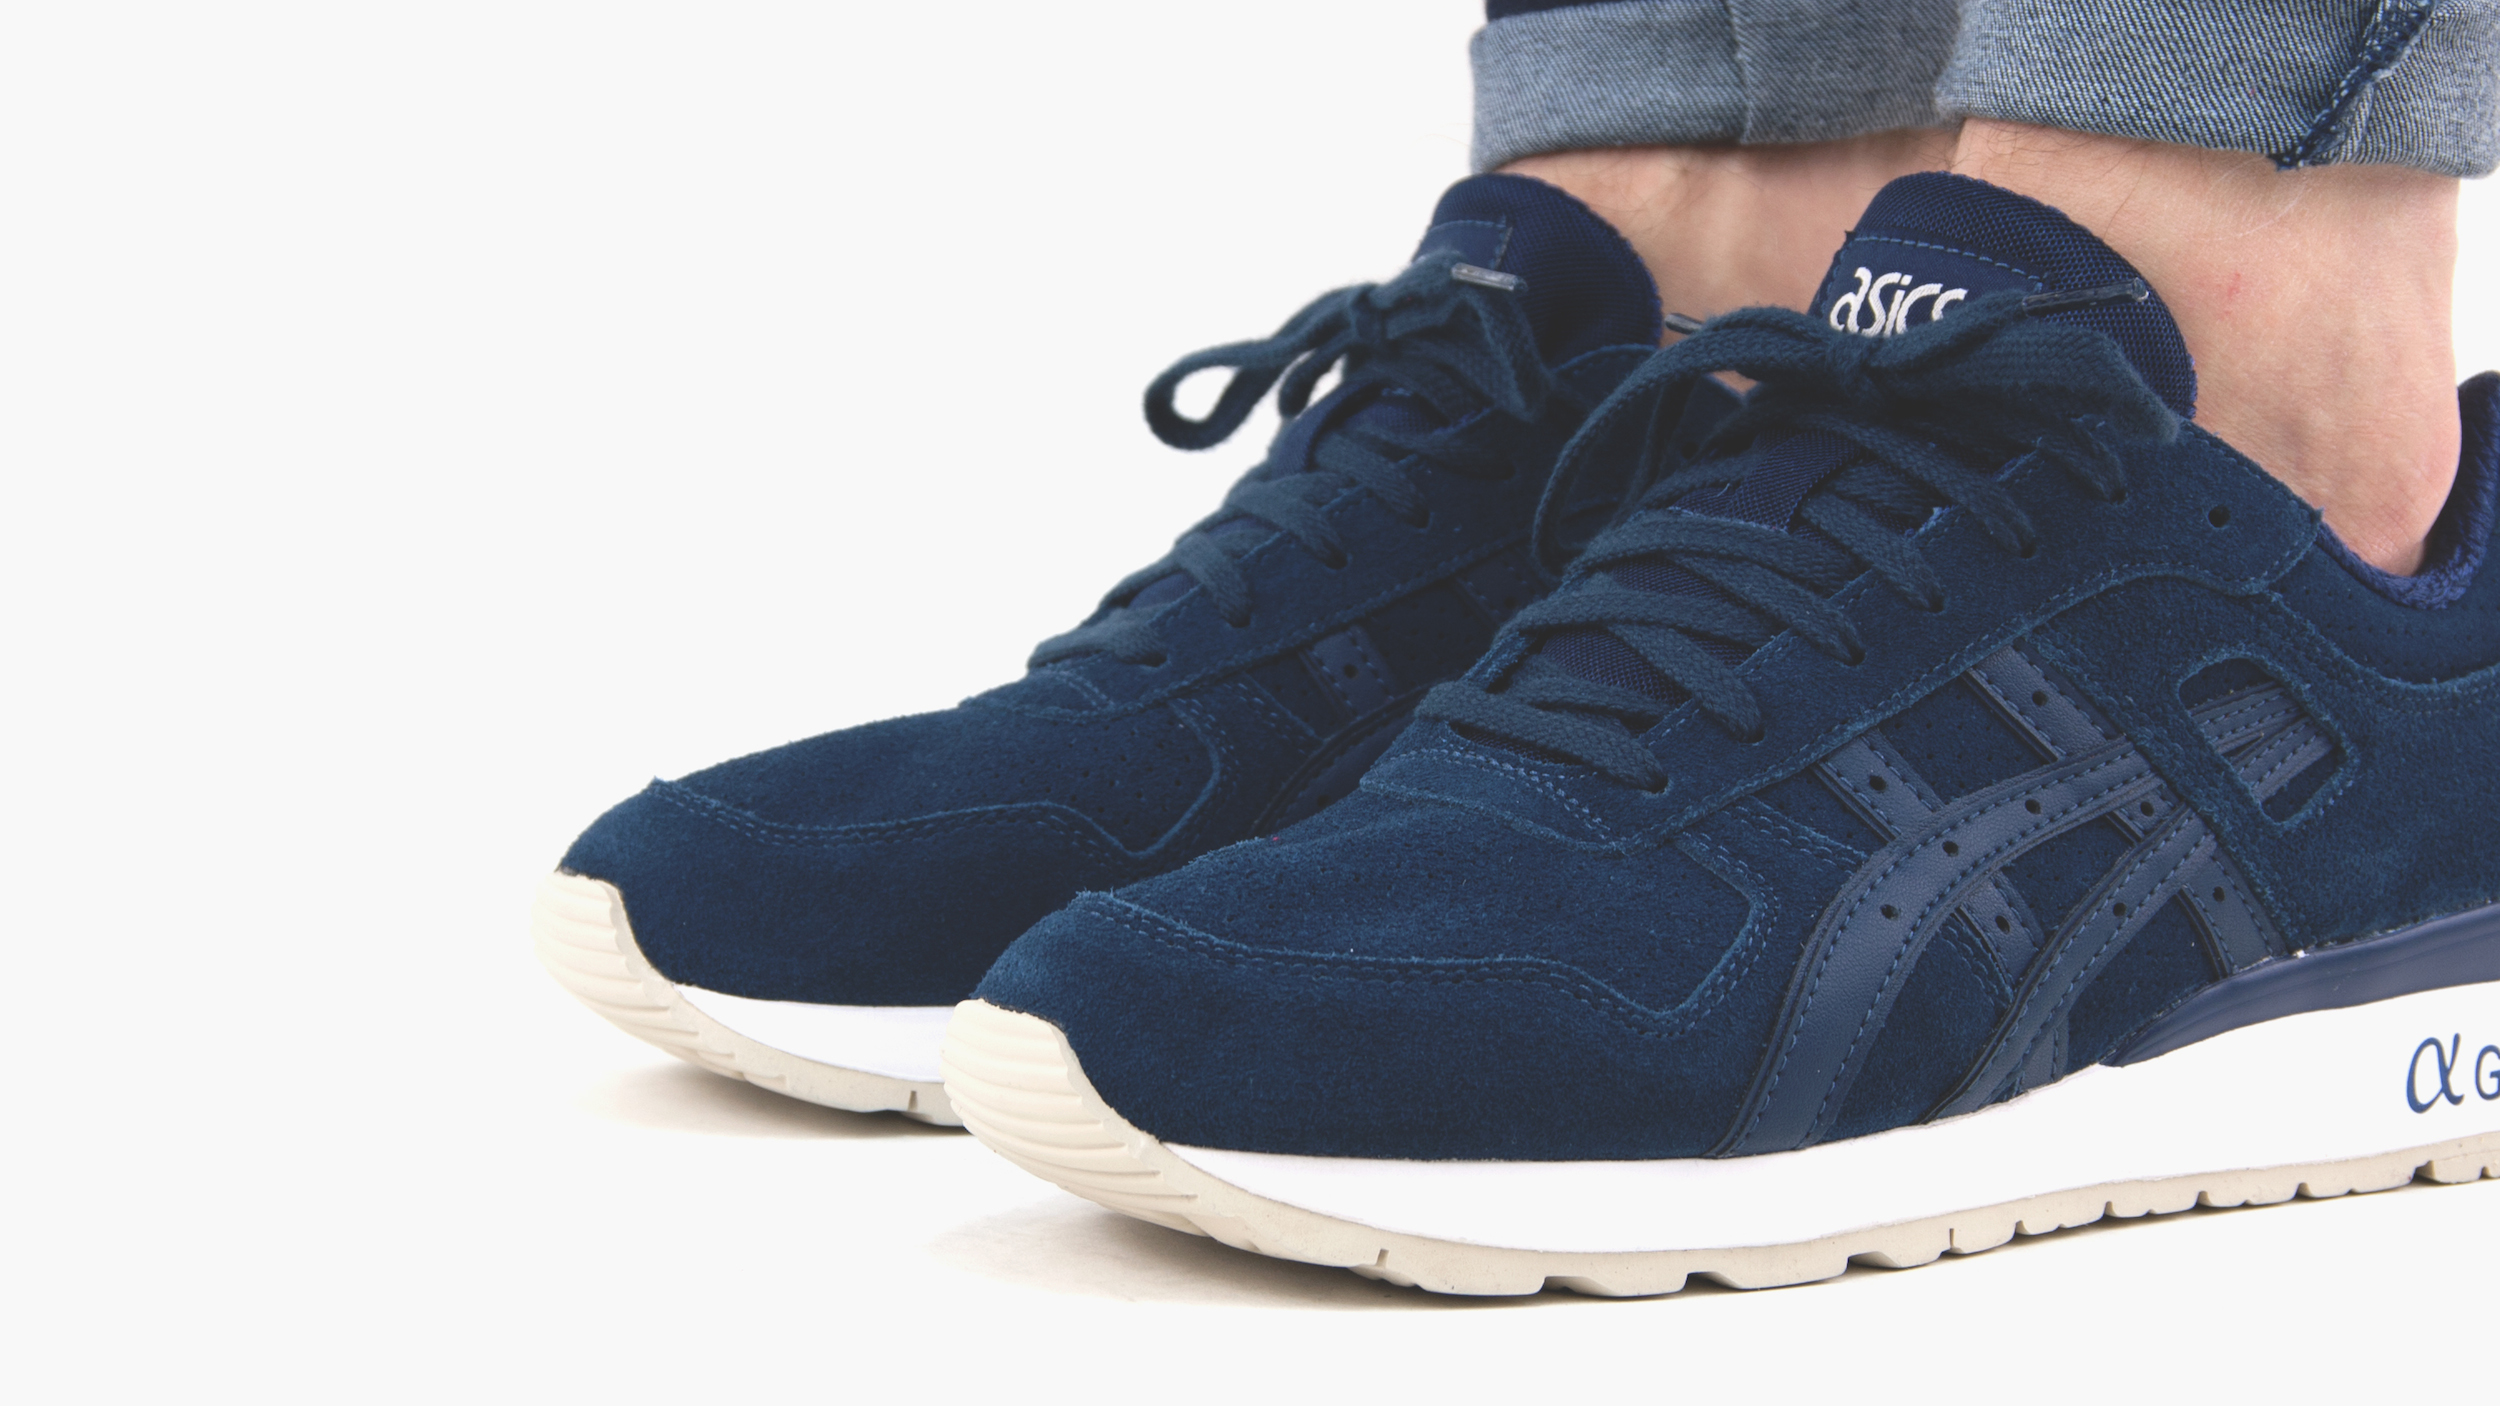 asics-gt-ii-suede-pack-MATE-Promo-4